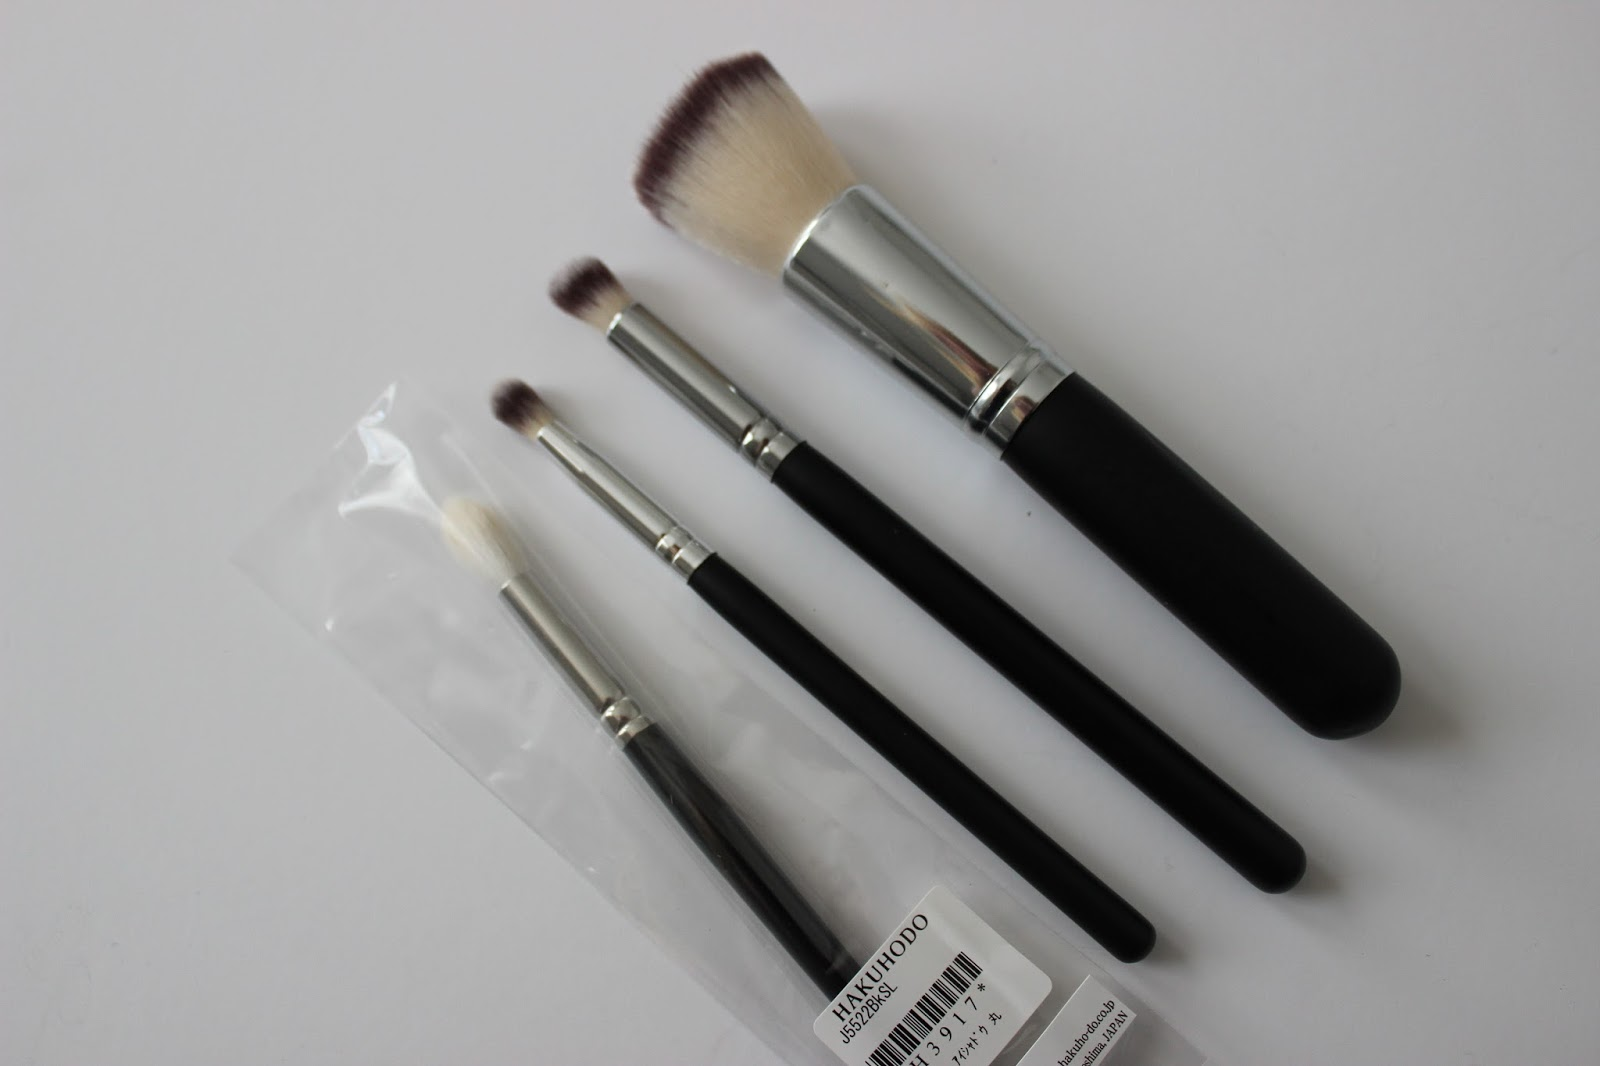 IMATS haul Crownbrushes and Hakuhodo eye brush